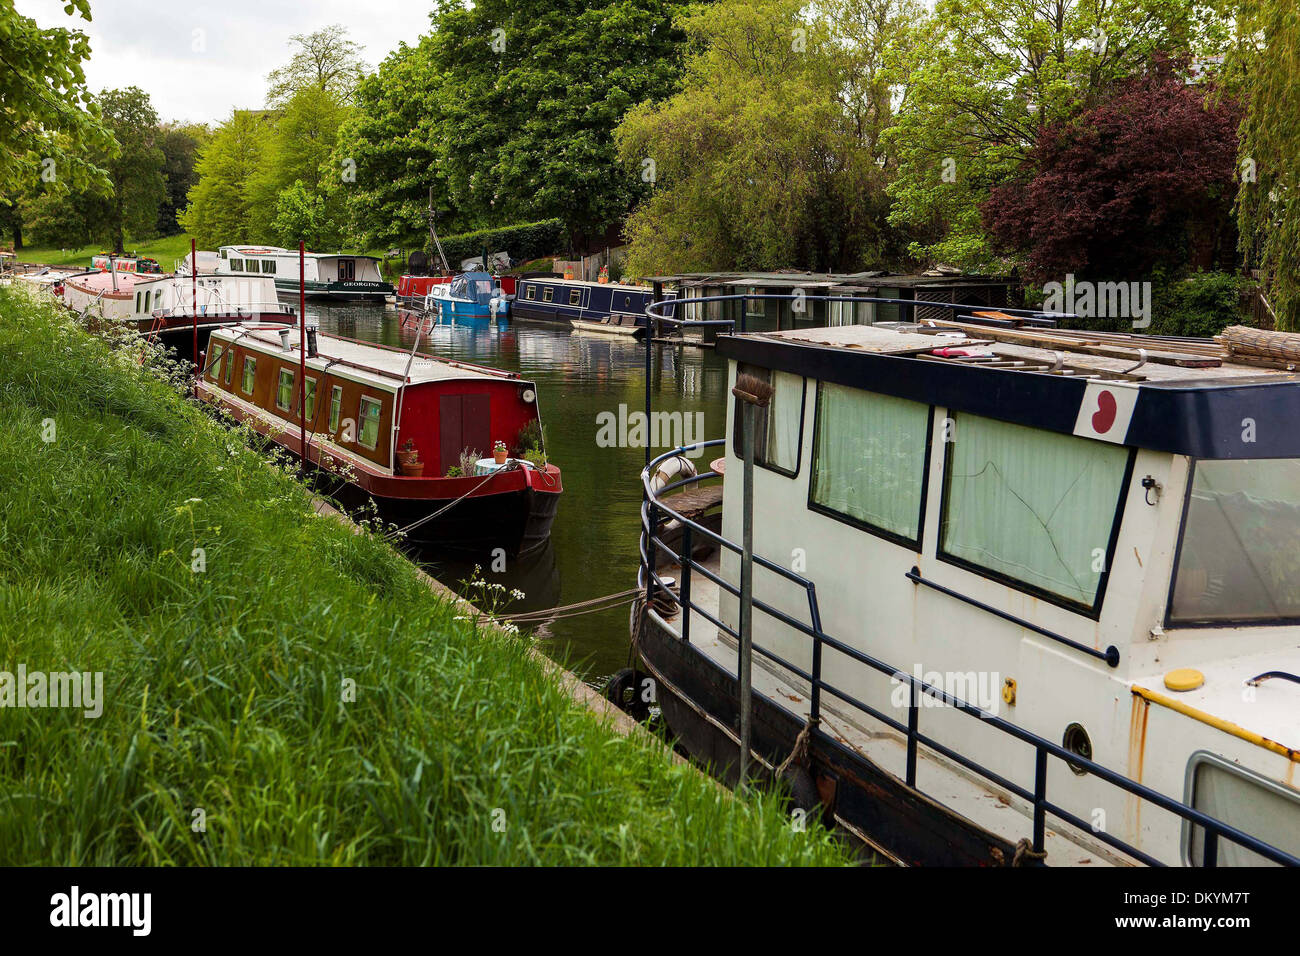 GV of boats on the River Cam in Cambridge. - Stock Image